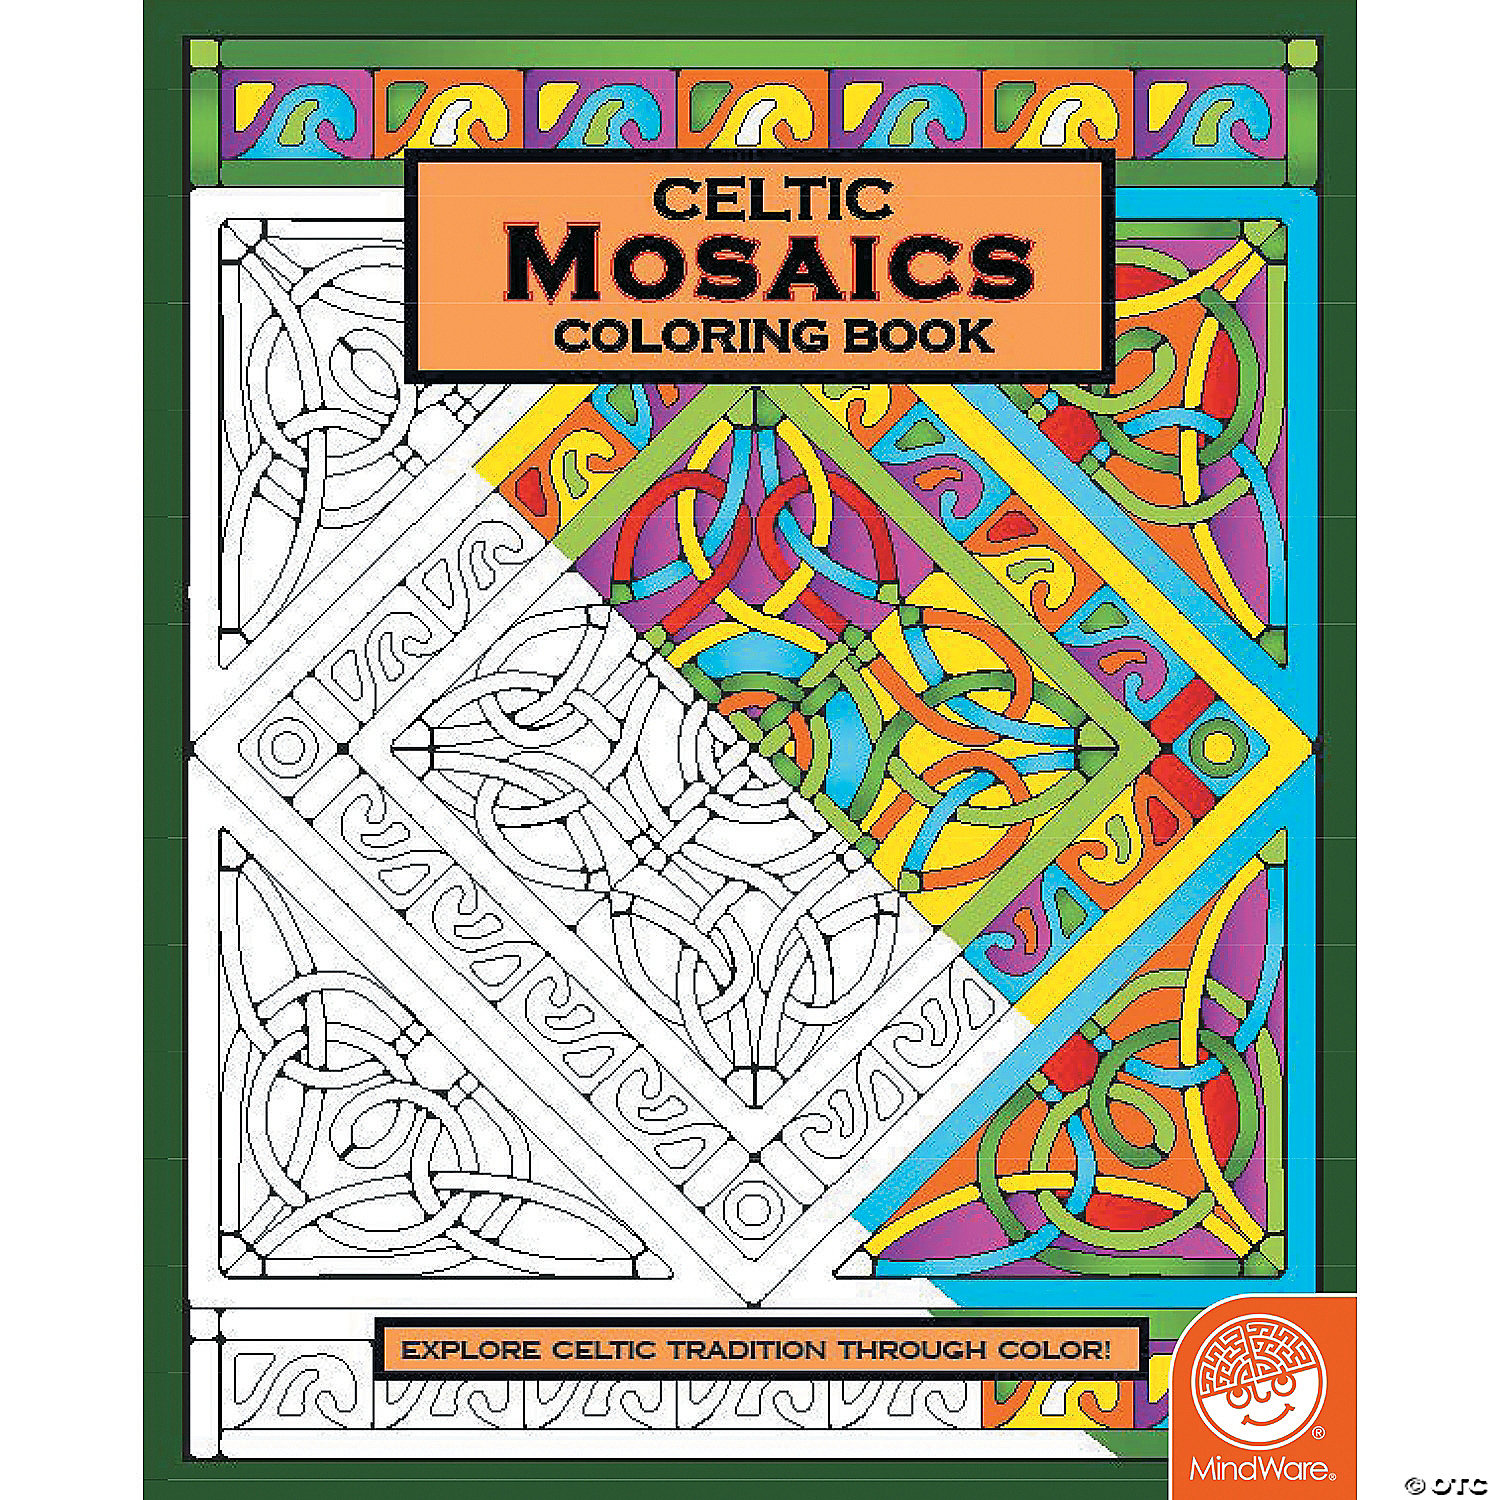 celtic mosaics coloring book - Mosaic Coloring Book